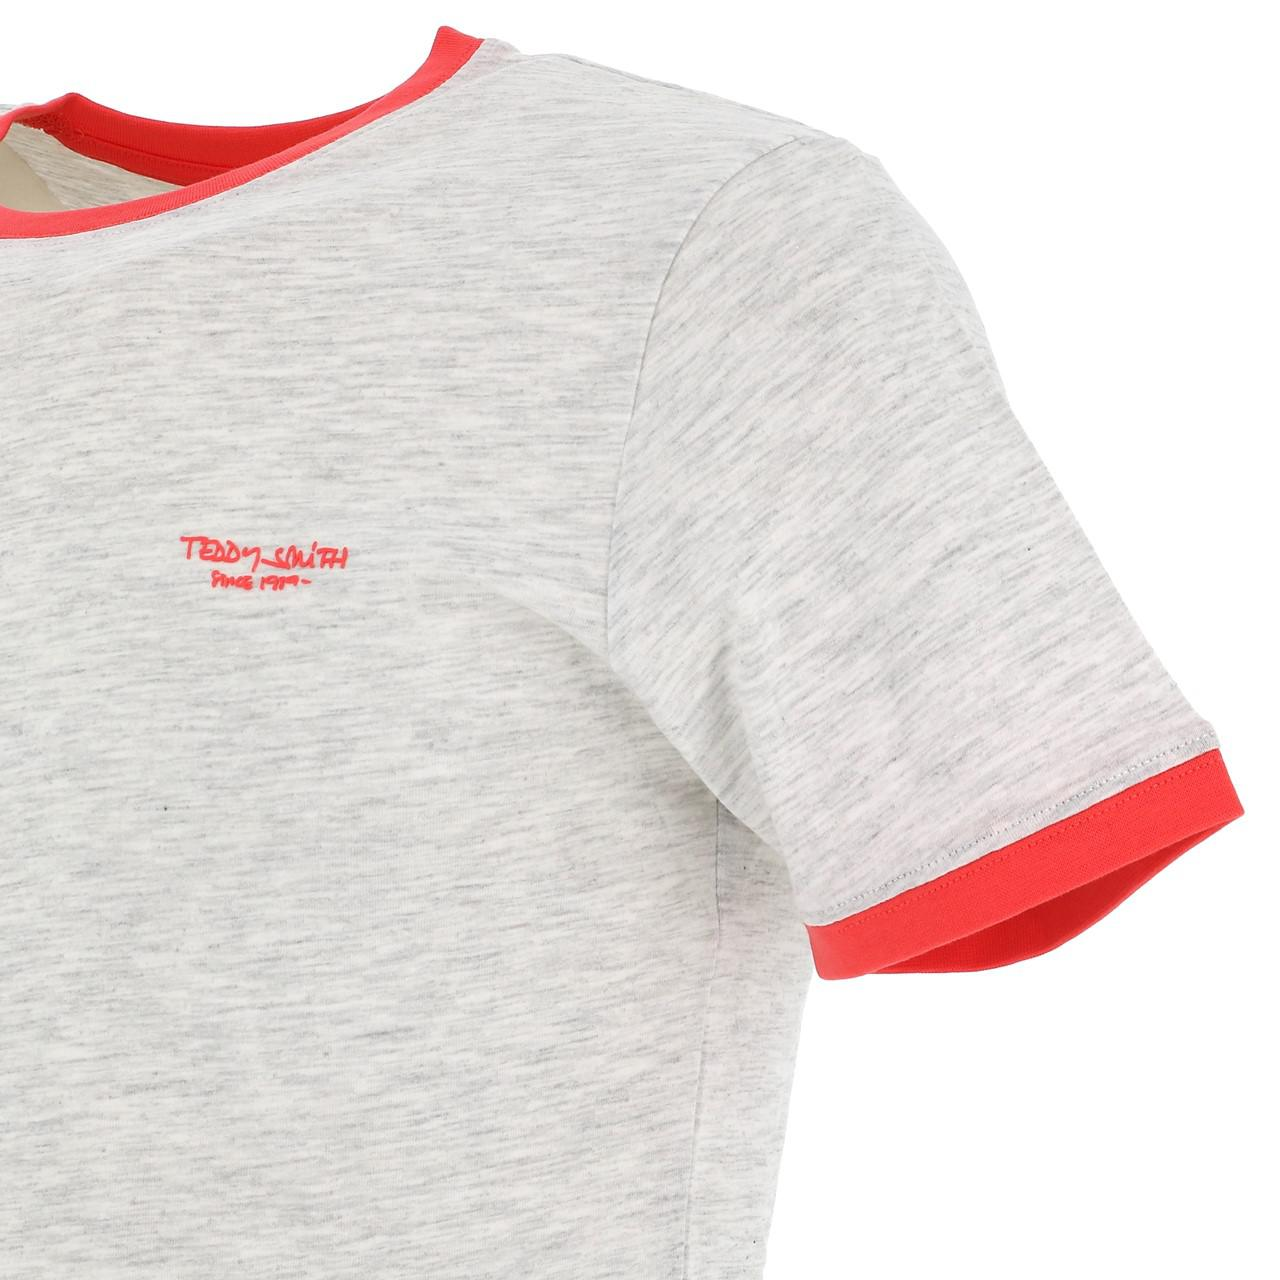 Short-Sleeve-T-Shirt-Teddy-Smith-the-Tee-Wht-Mel-Coral-White-18160-Does-Not thumbnail 3